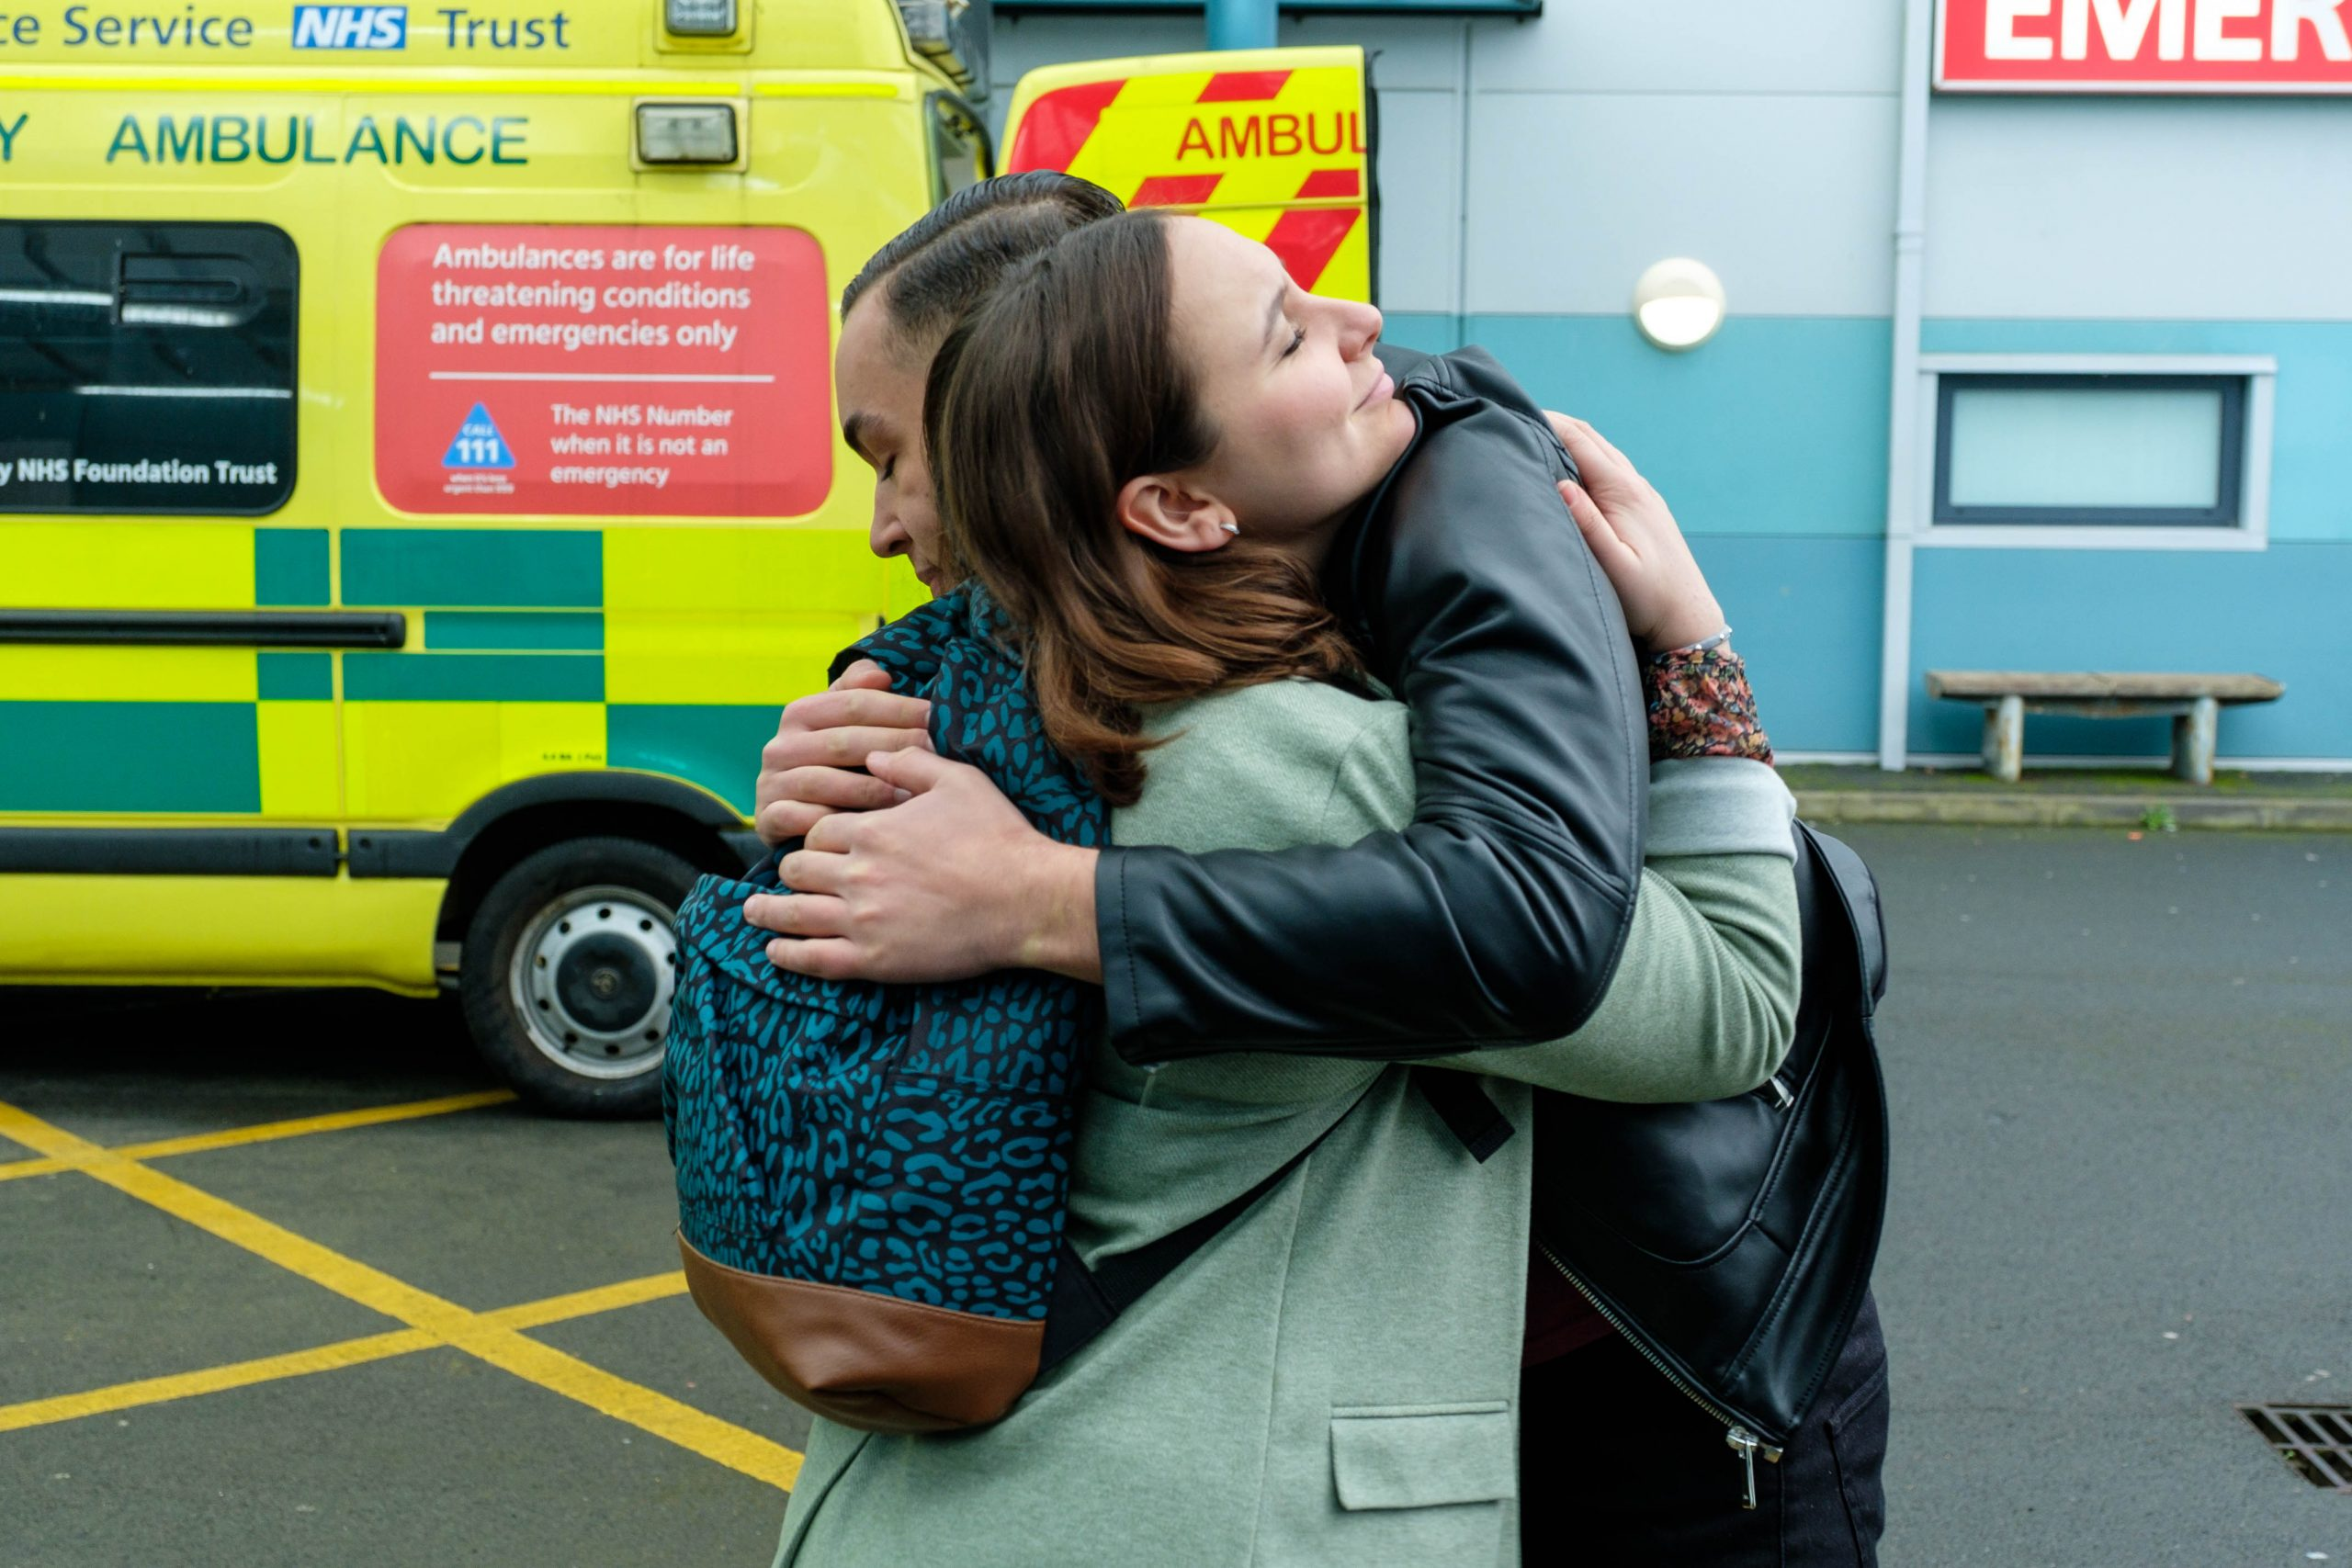 Marty and Jade hug, as he offers his support